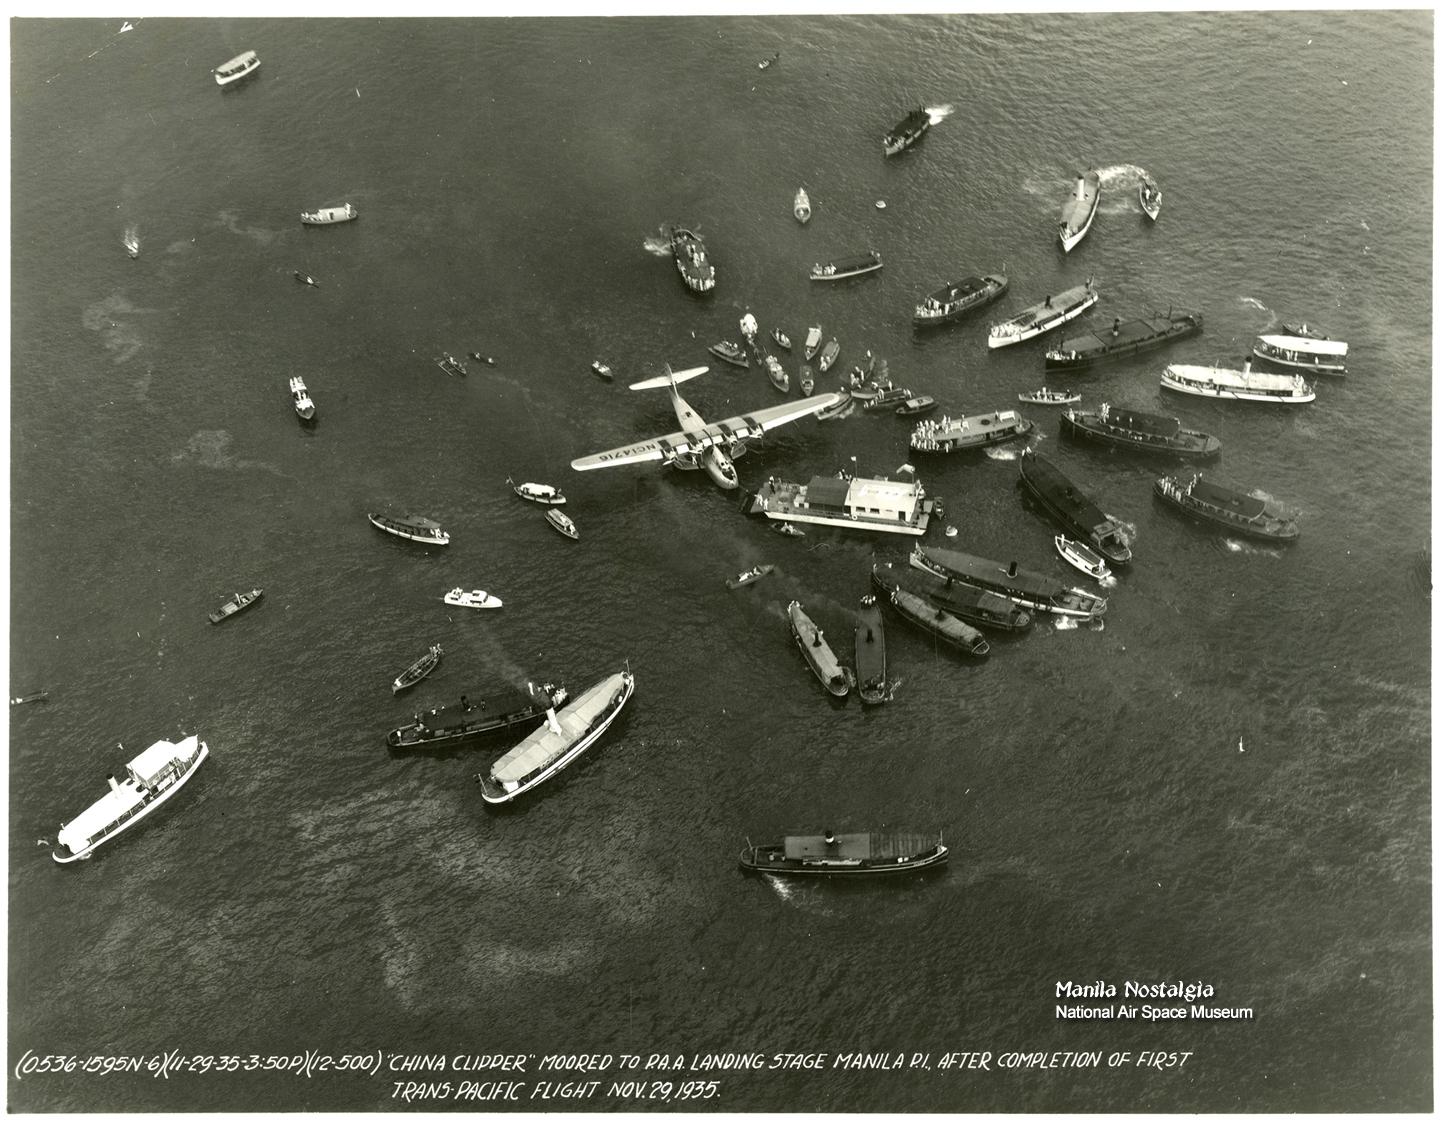 PanAm Clipper lands-Nov1935 (courtesy NASM)